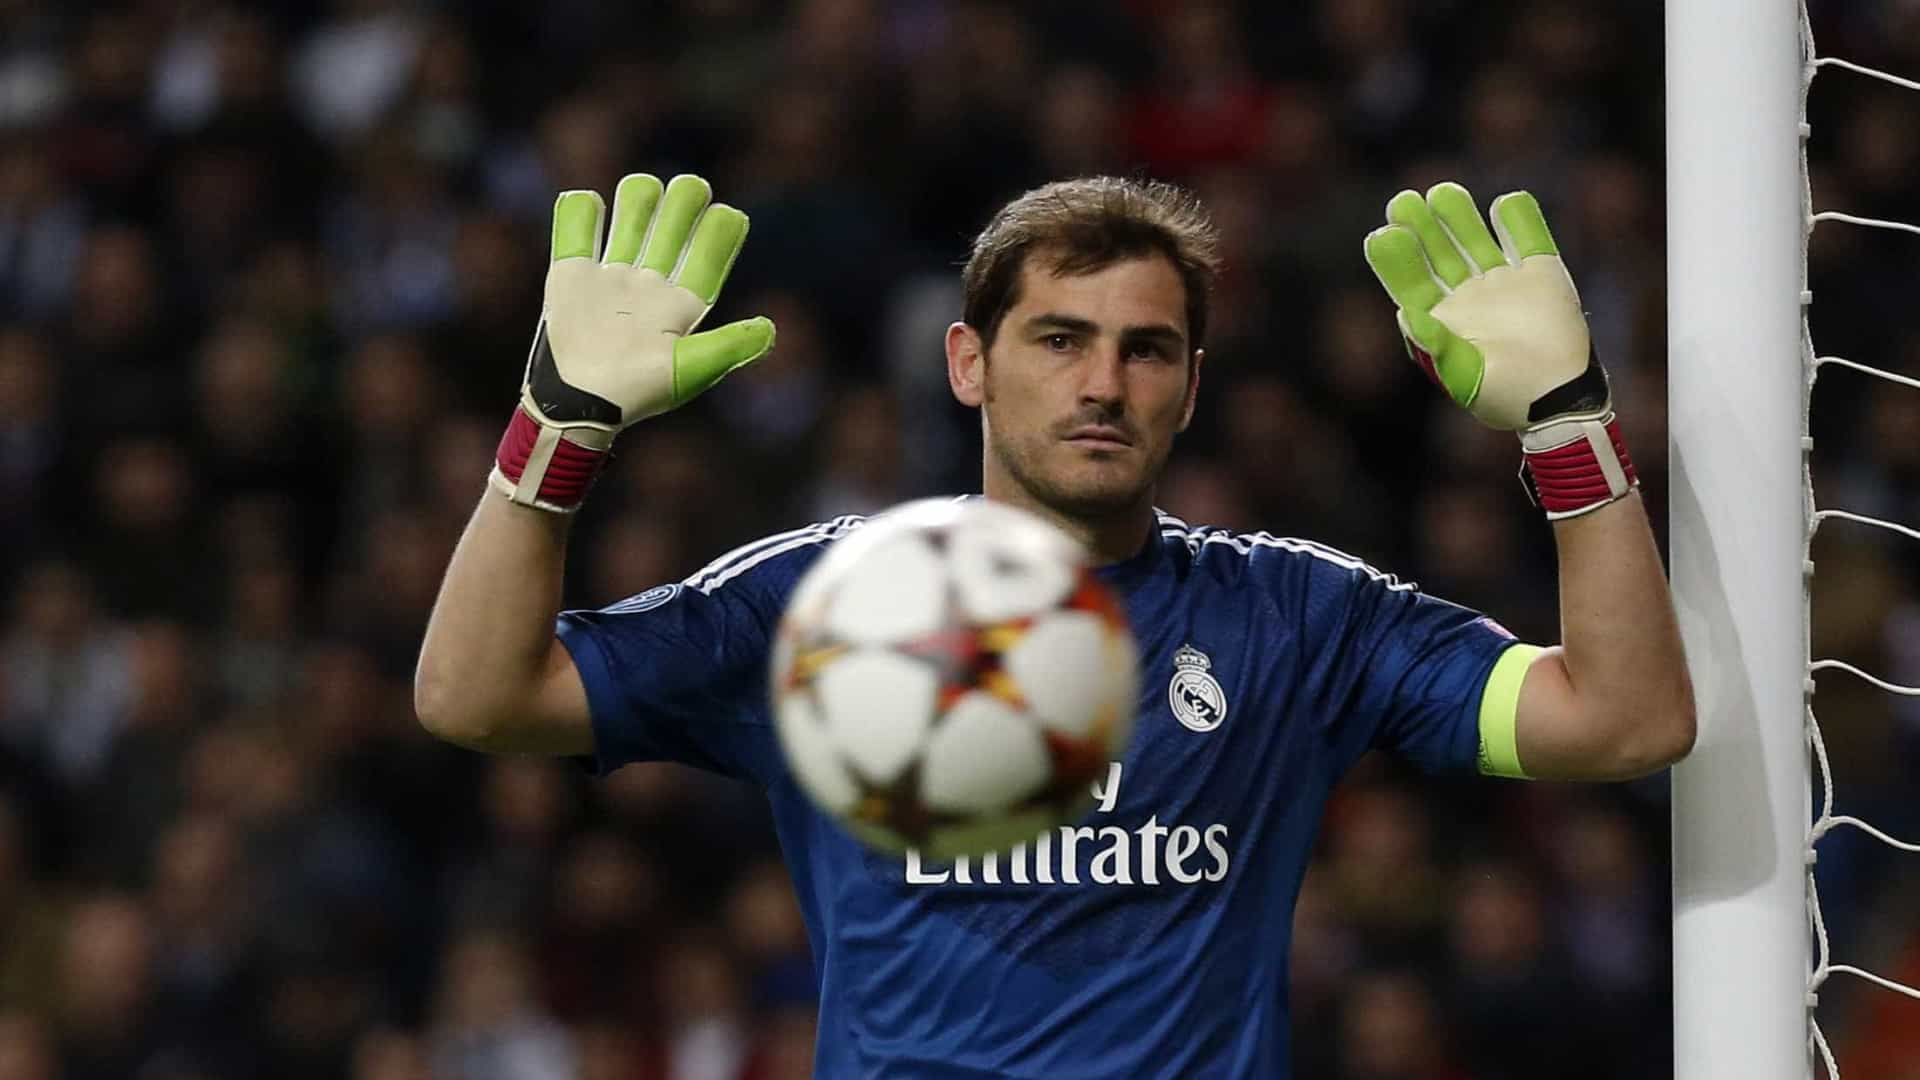 Iker Casillas arrasa atuação do VAR na final entre França e Croácia